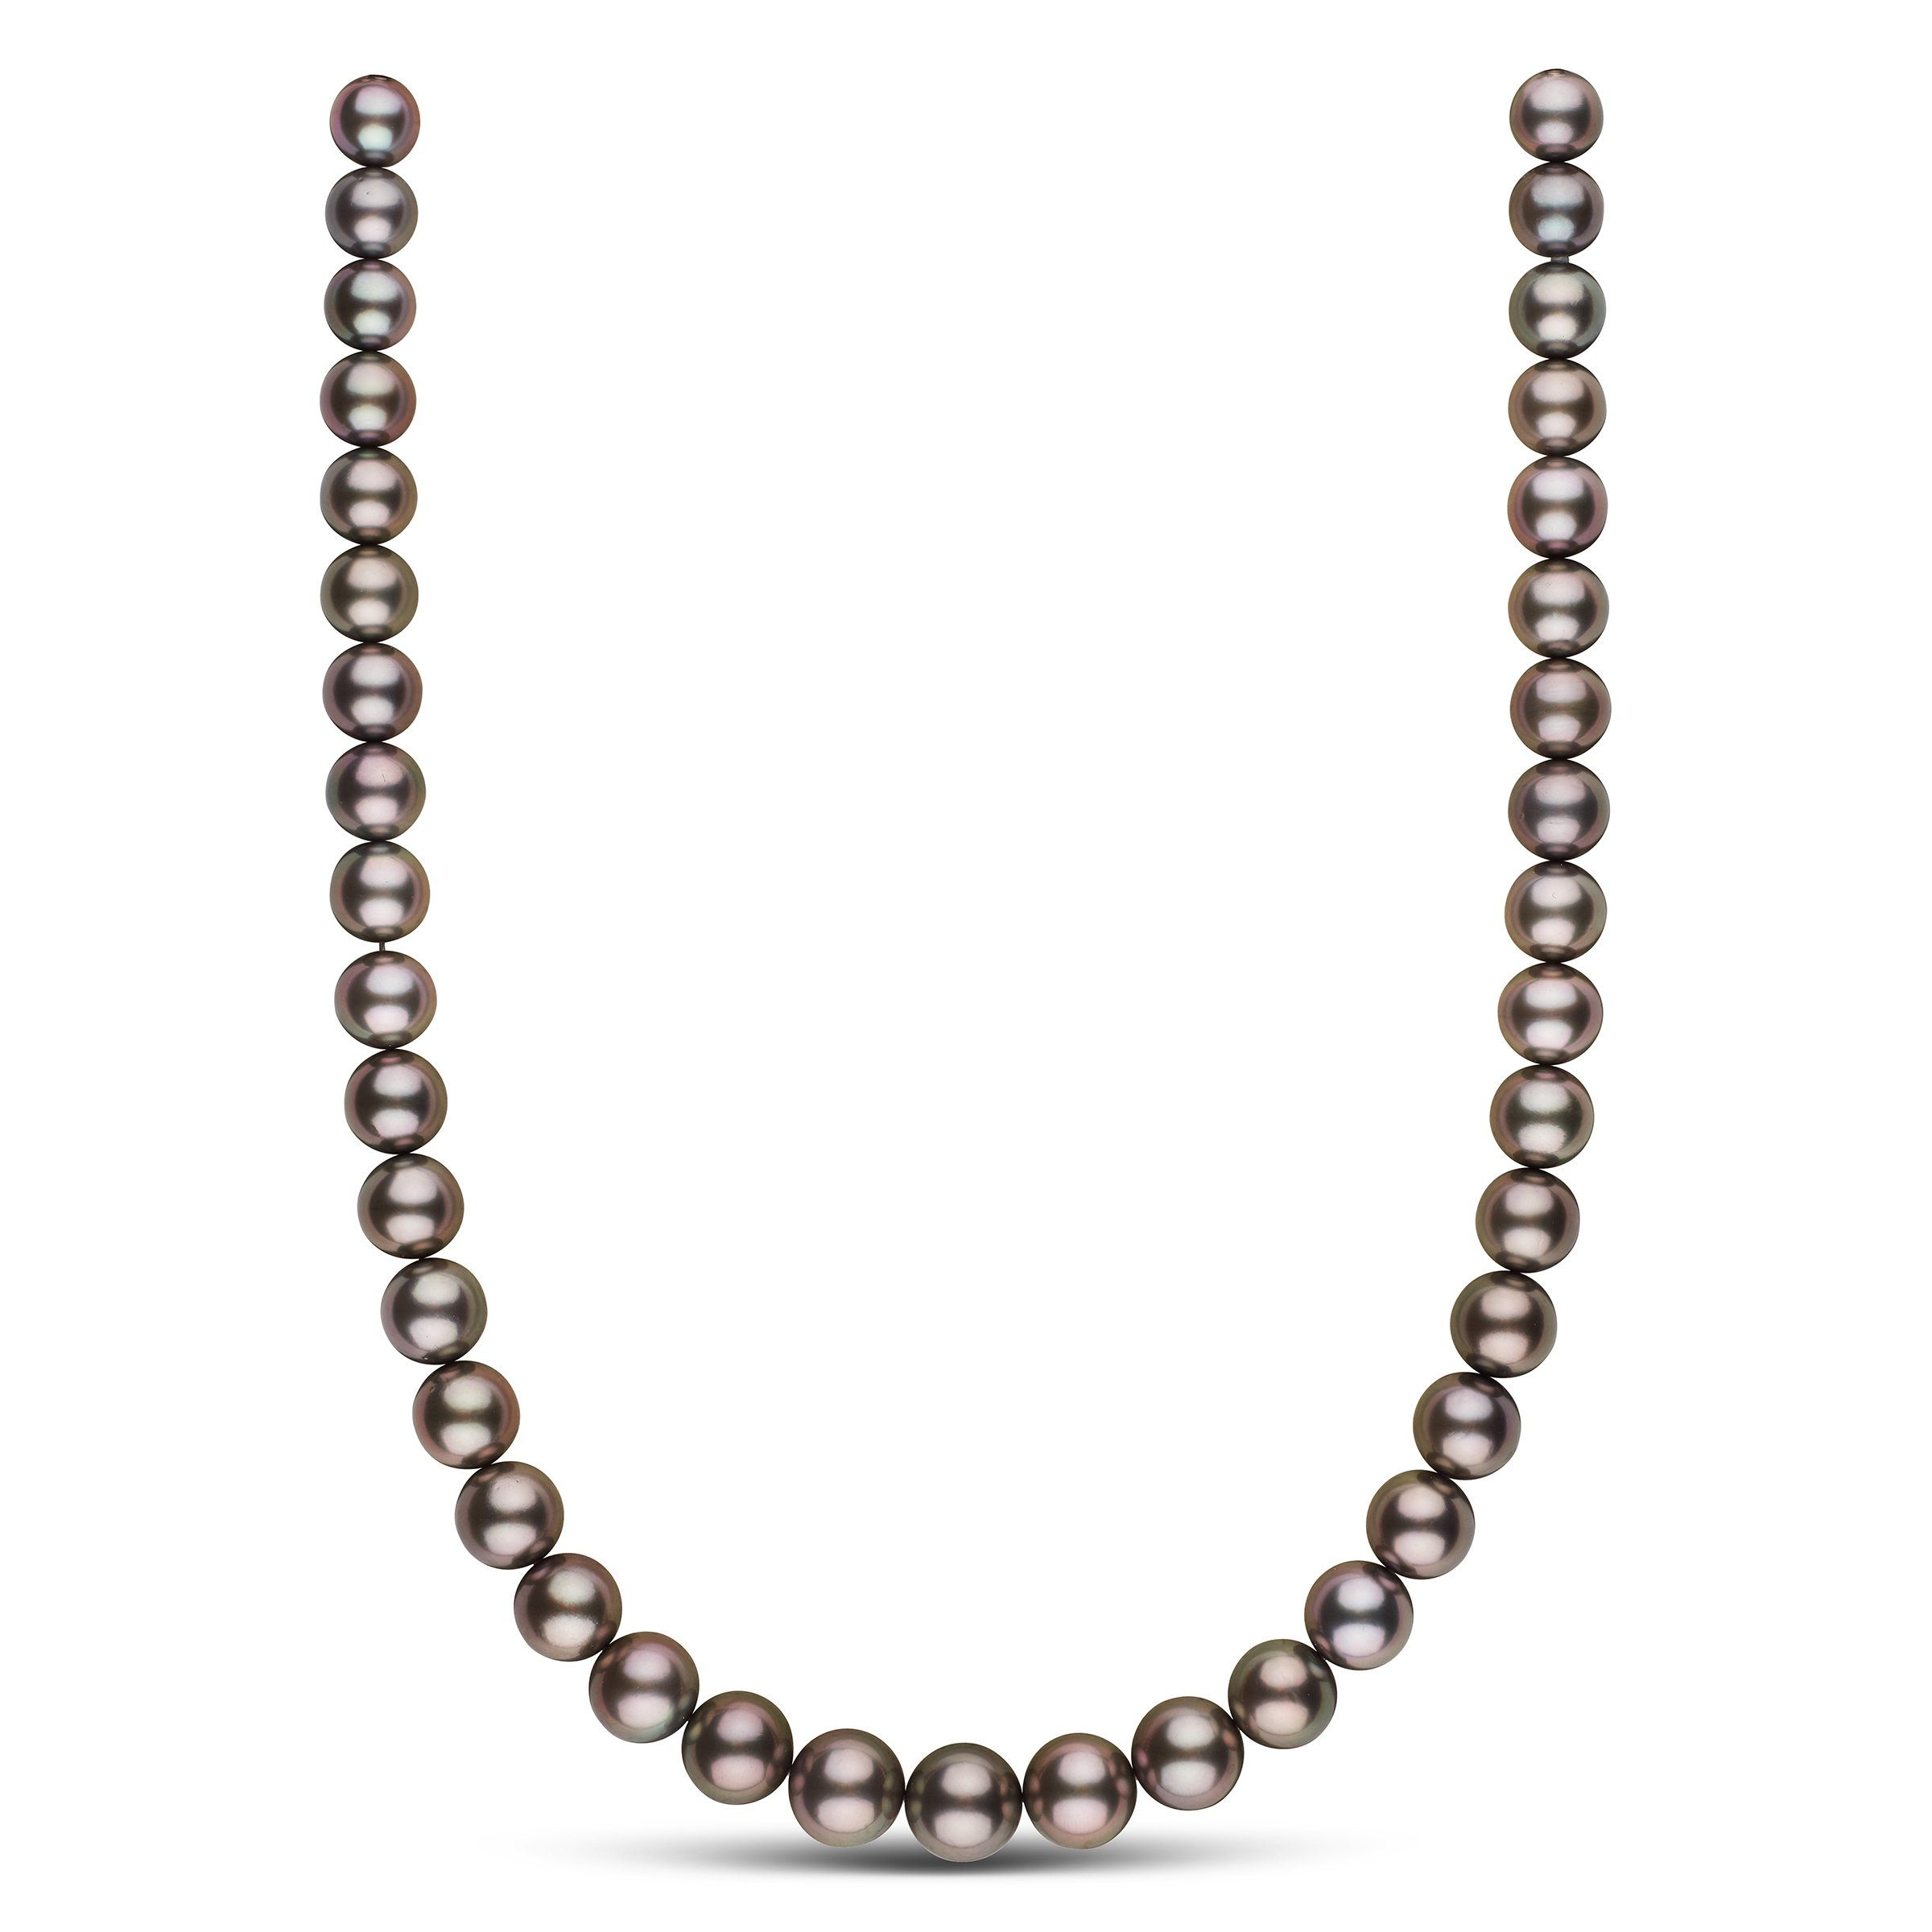 9.2-11.9 mm AAA Tahitian Round Pearl Necklace